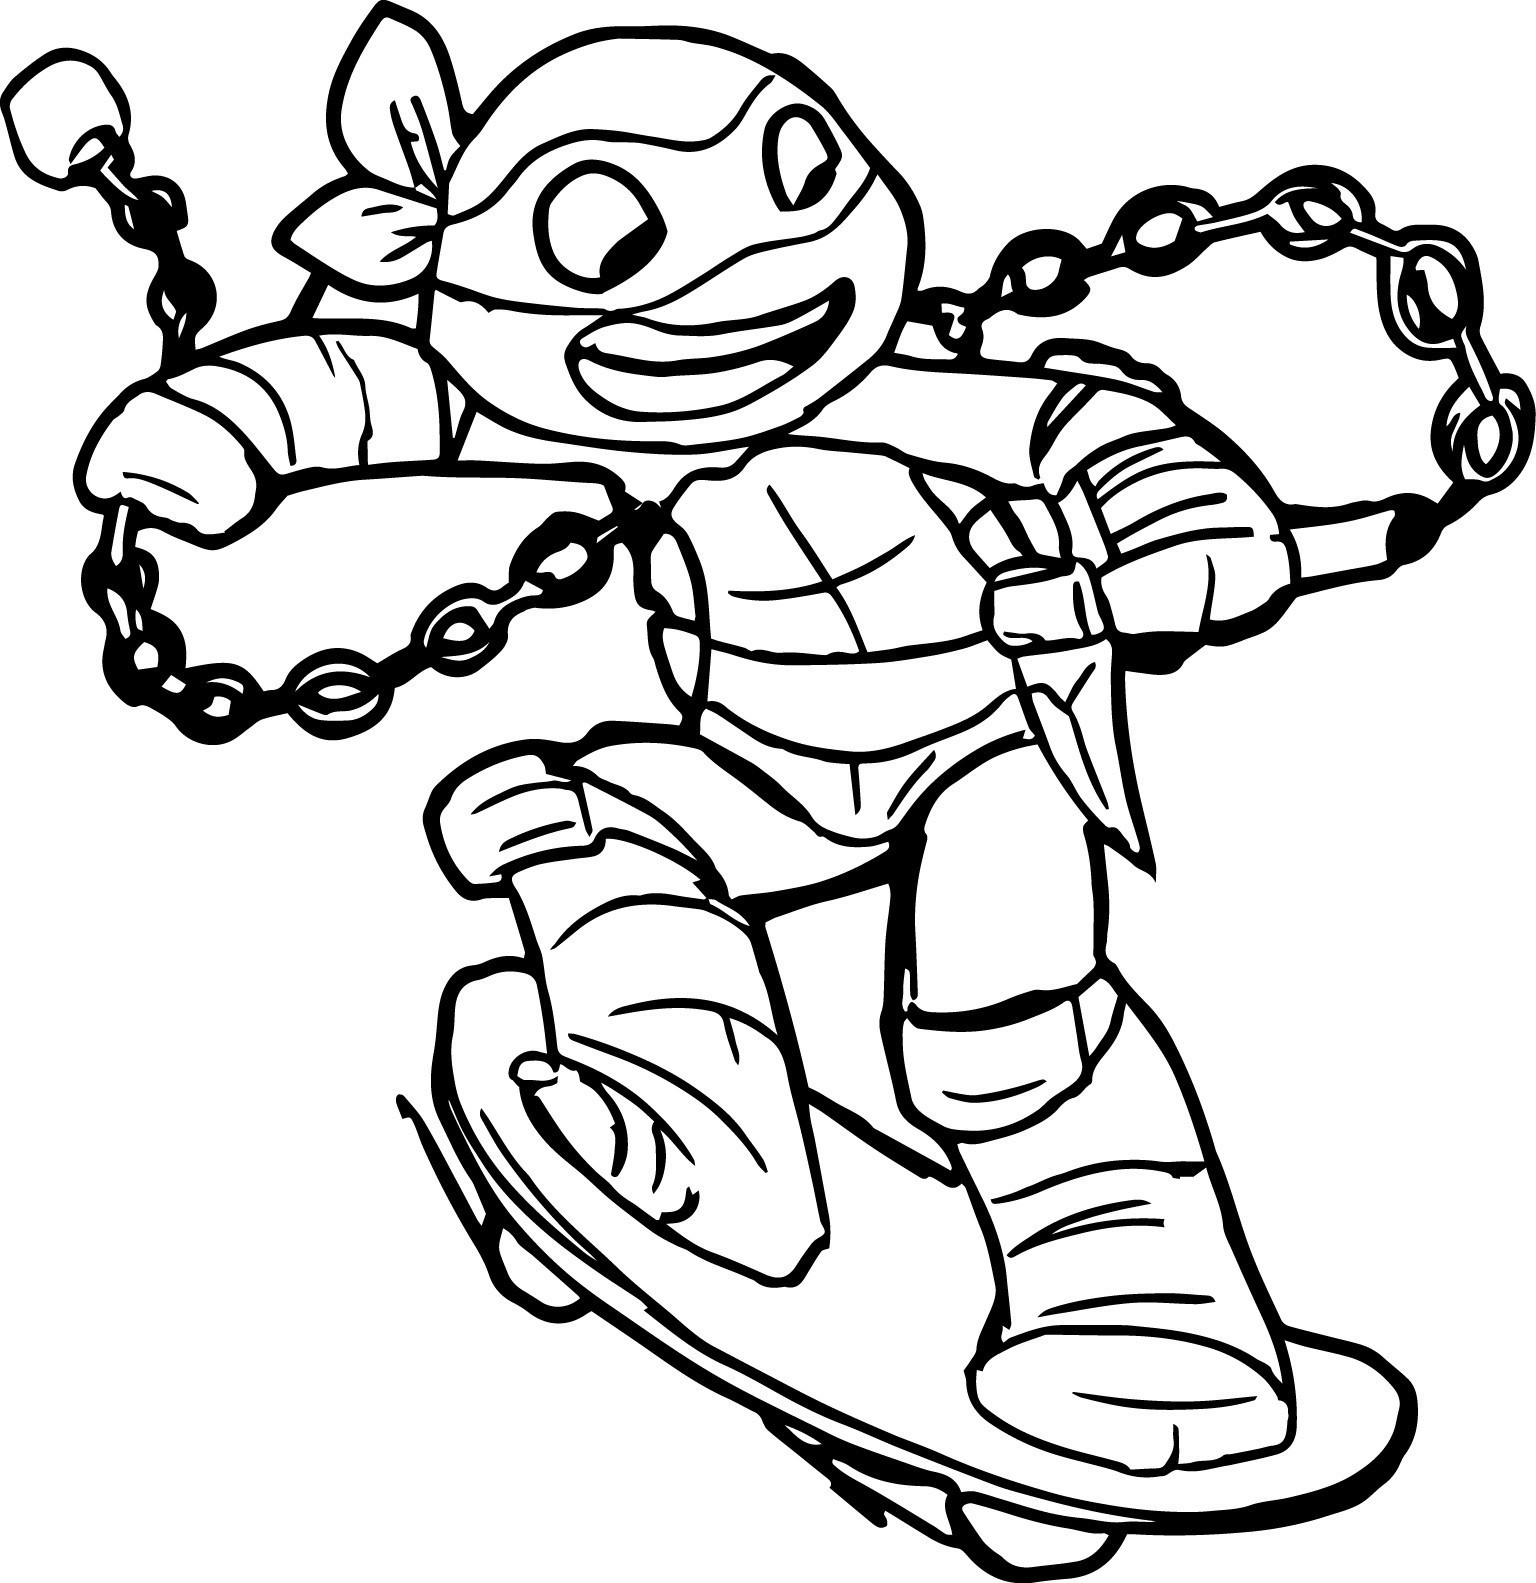 Free Ninja Turtle Coloring Pages Azspringtrainingexperience